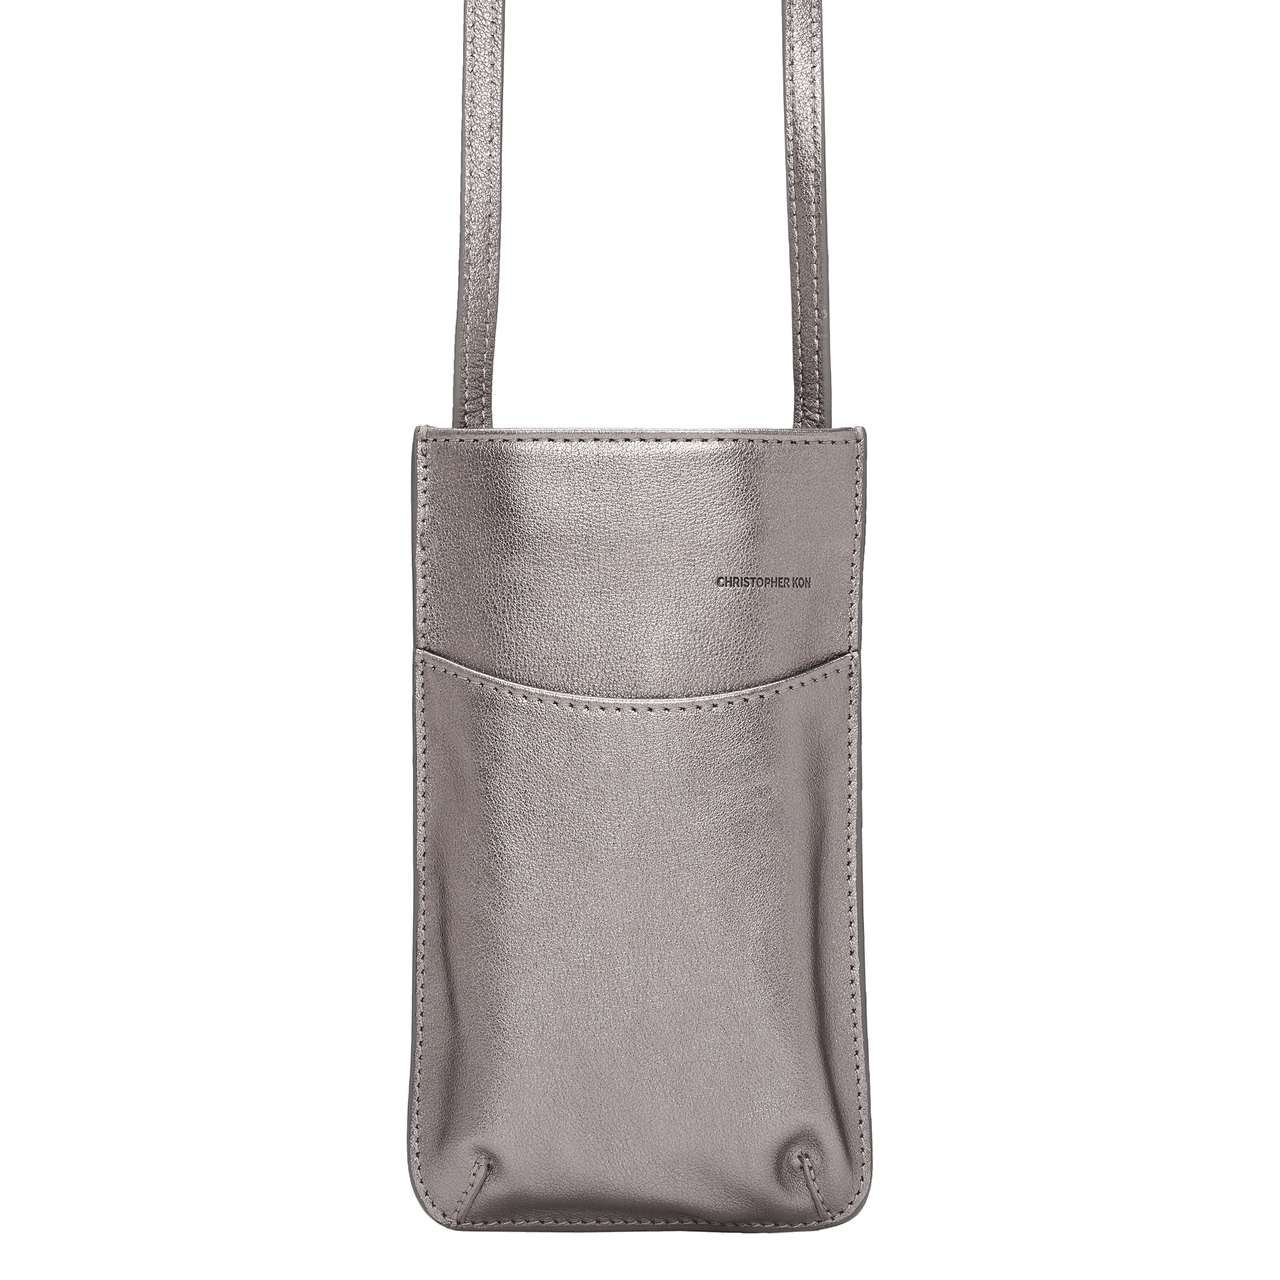 DARBY PHONE SLIP CROSSBODY - PEWTER